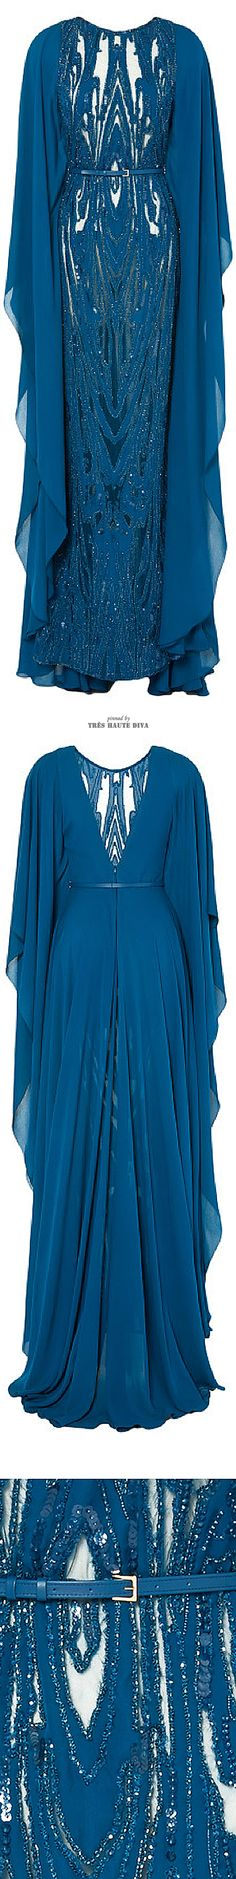 Ellie Saab Embroidered Blue Double Silk Georgette Butterfly Sleeve Gown ♔ SS 2015